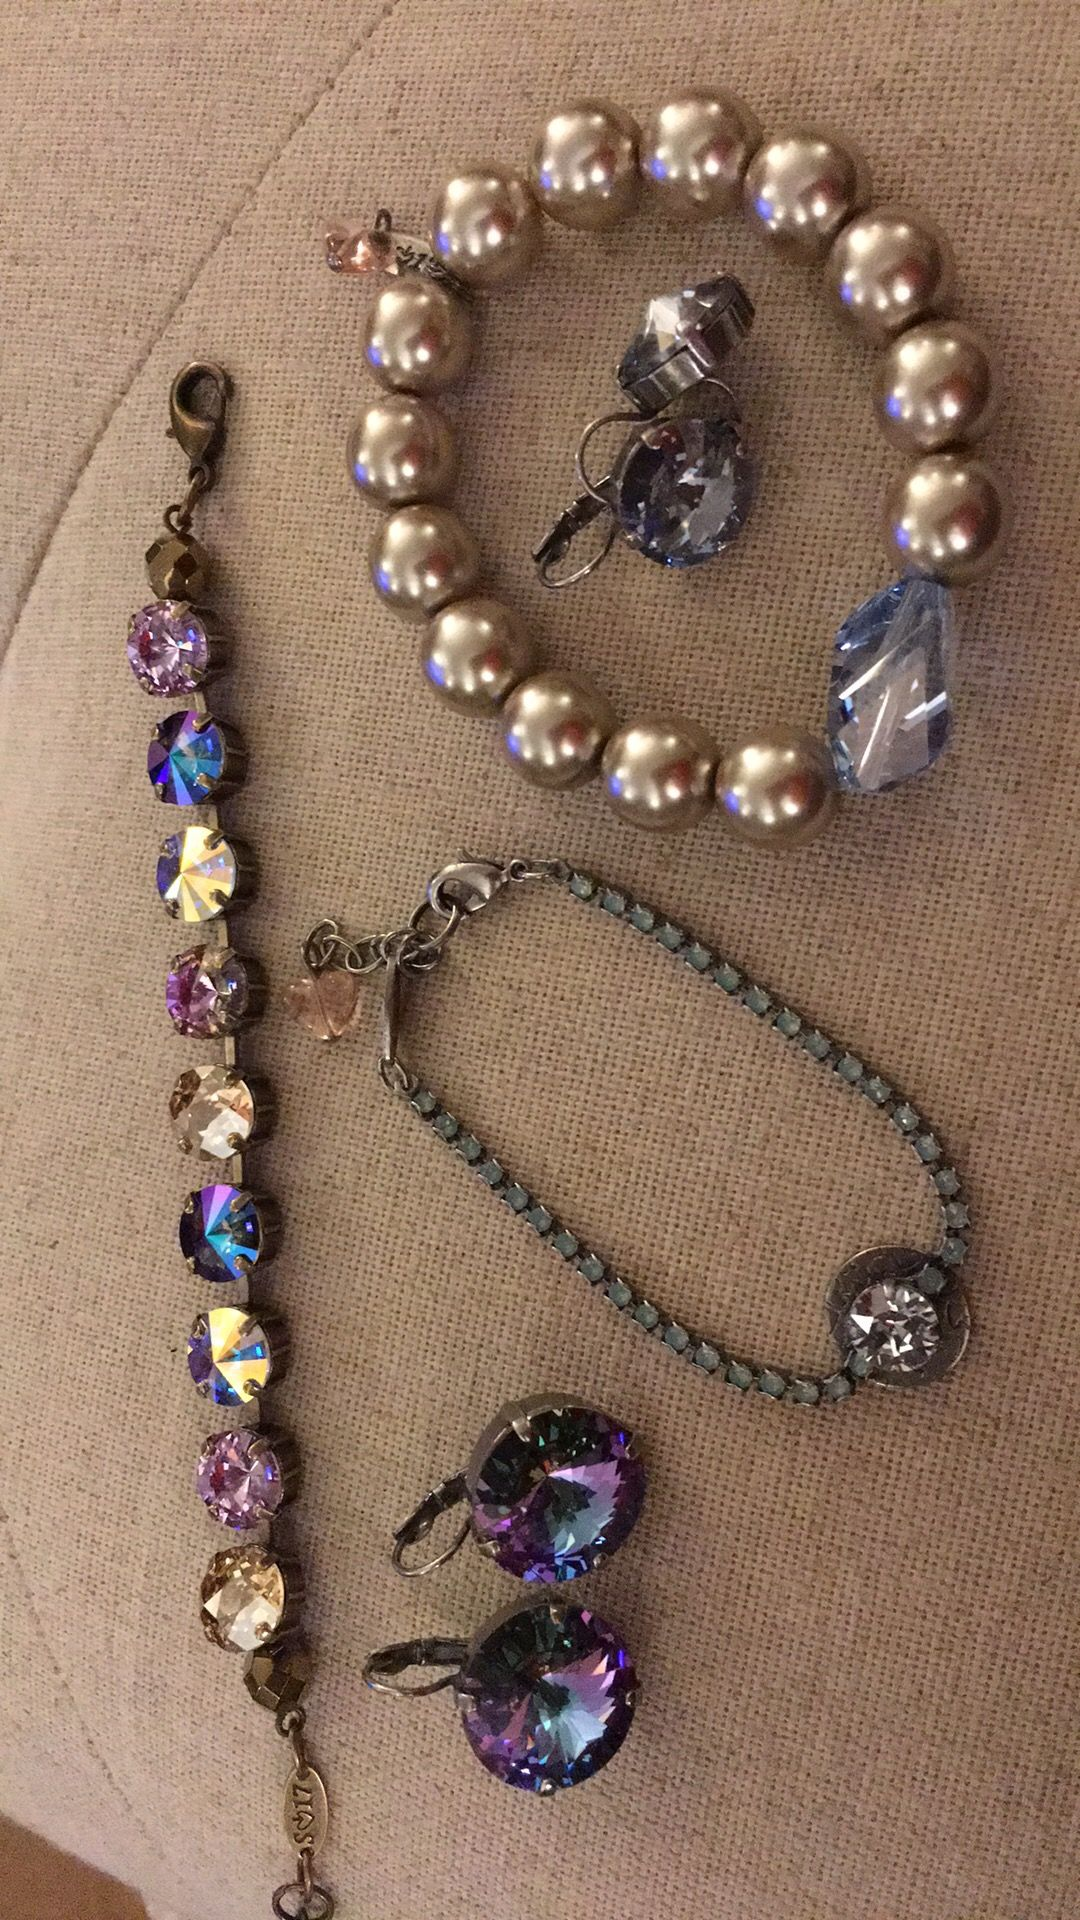 Sabika look necklace - You Can Order At Https Sabika Jewelry